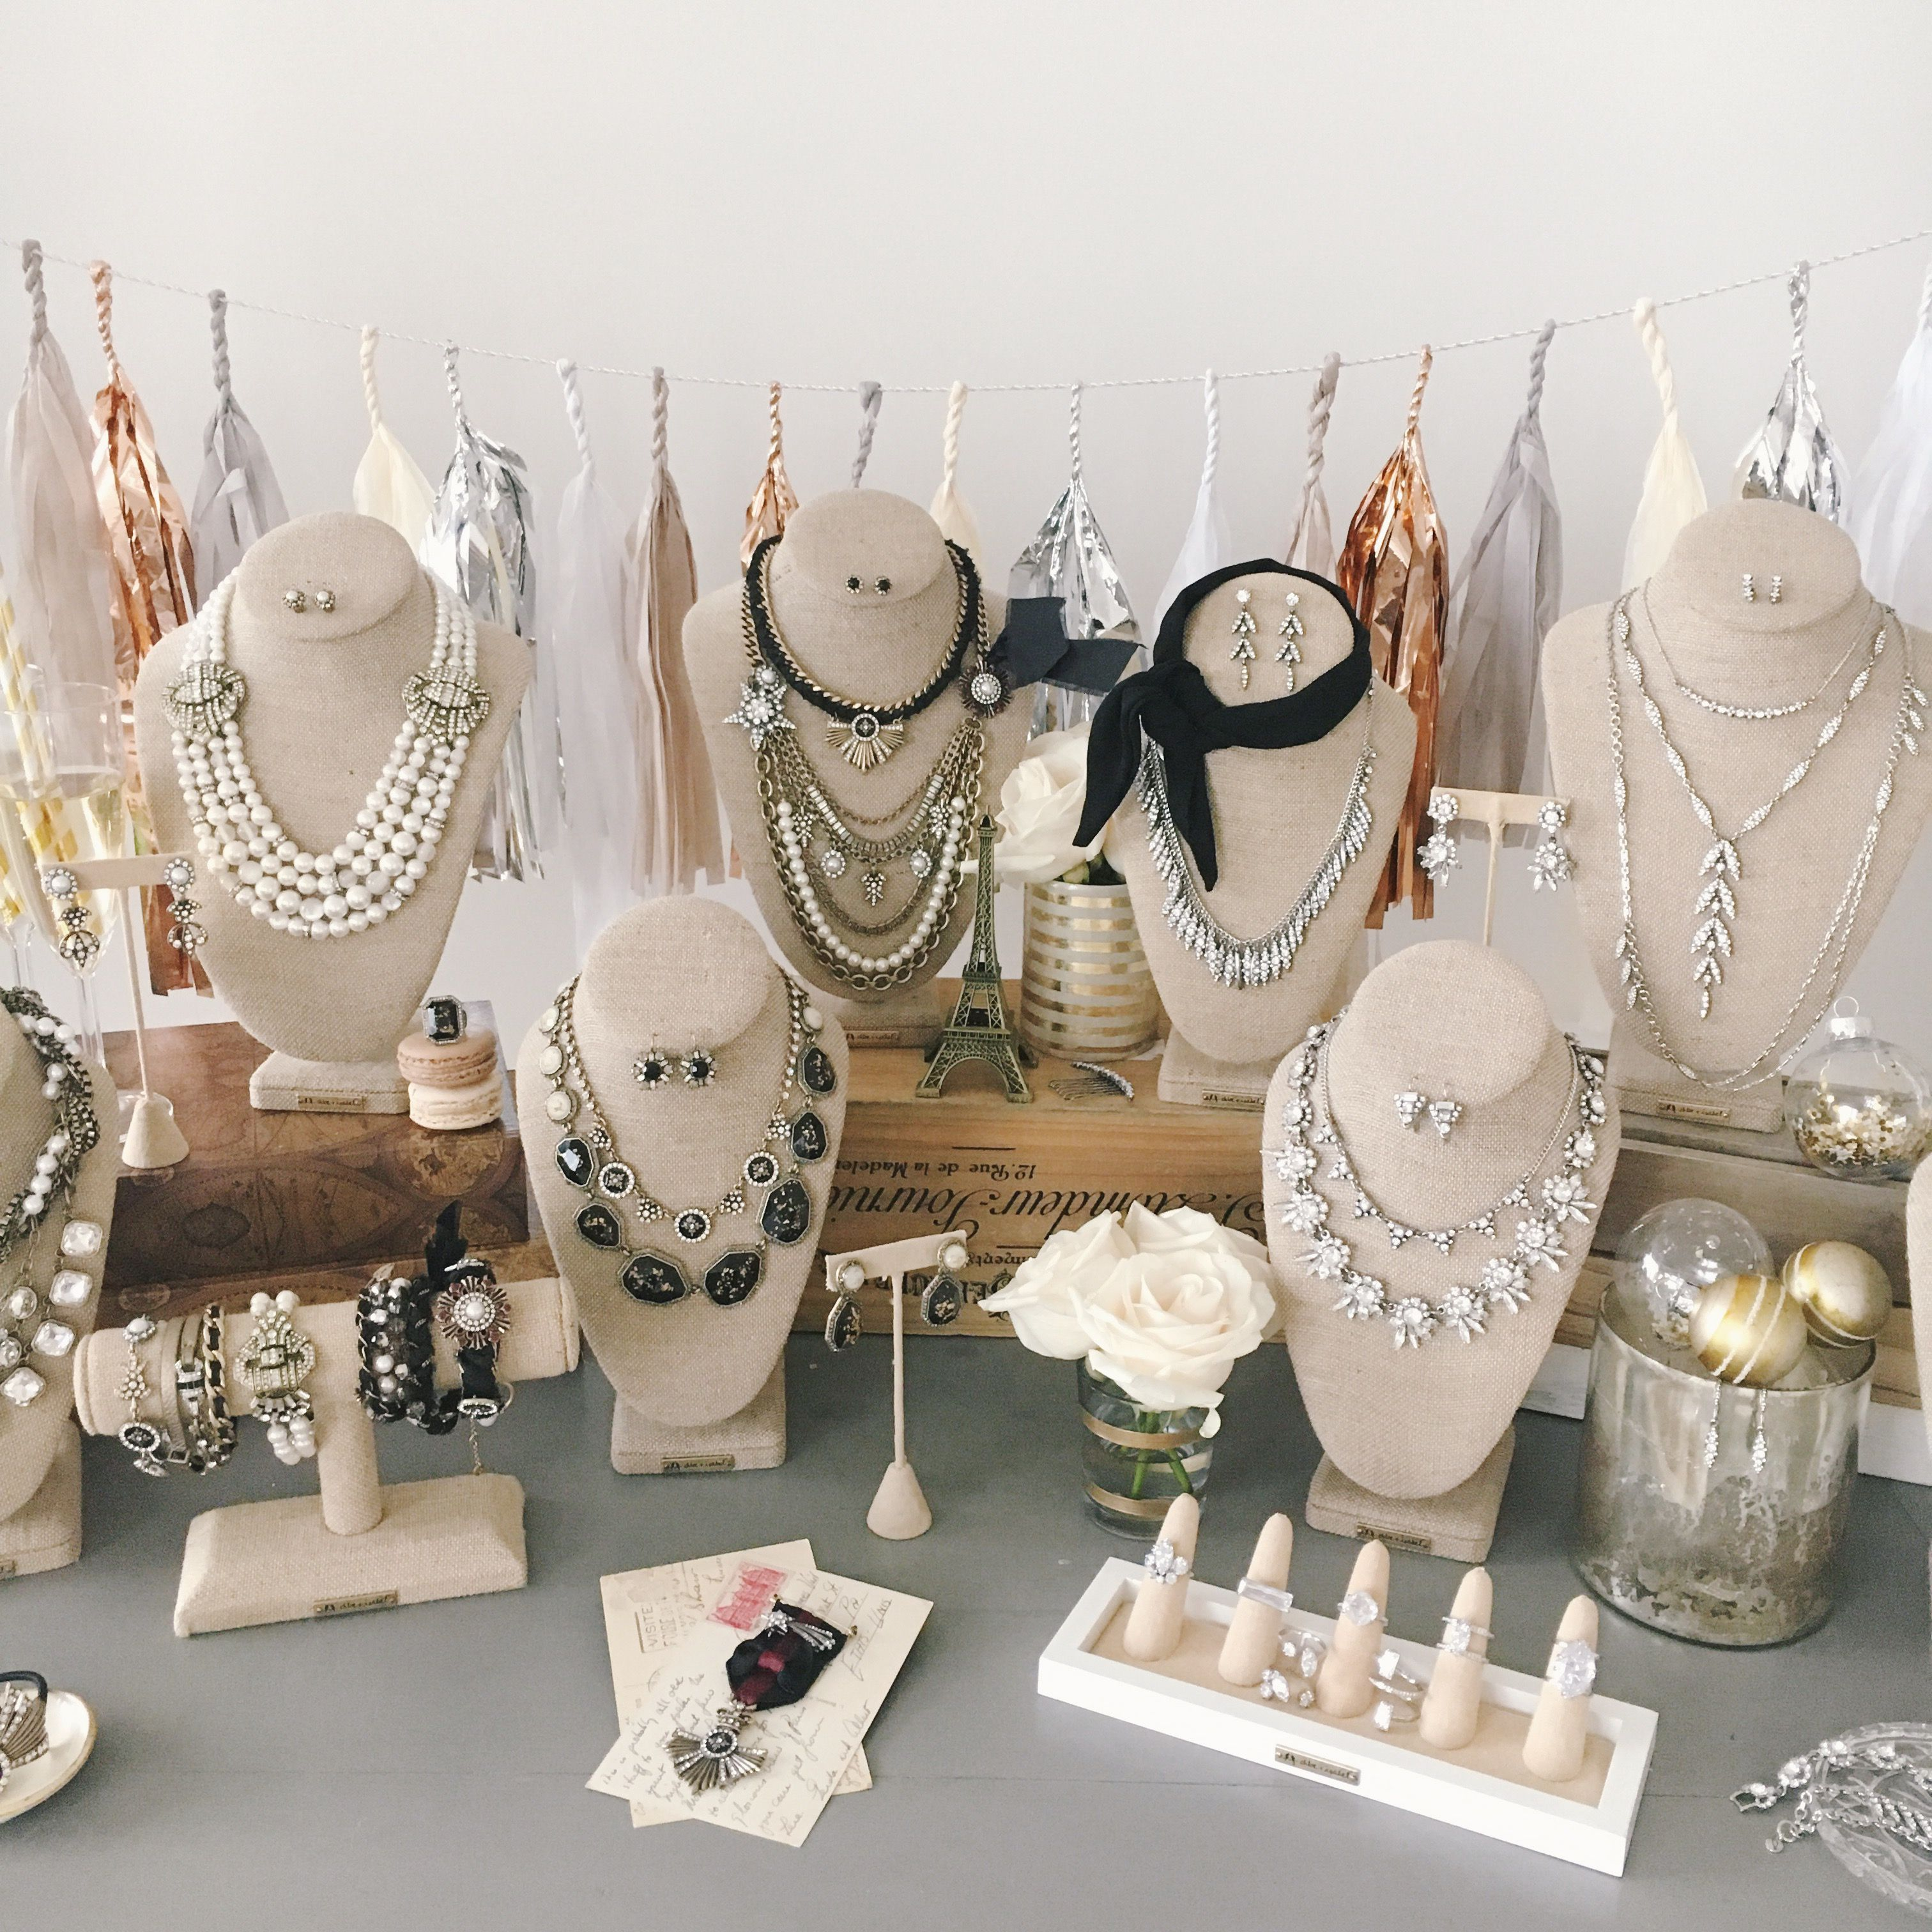 A Chloe + Isabel pop-up is a great way to meet new friends + earn FREE jewerly! Host a holiday event with me this month for a special gift, sure to make the season merry + bright!